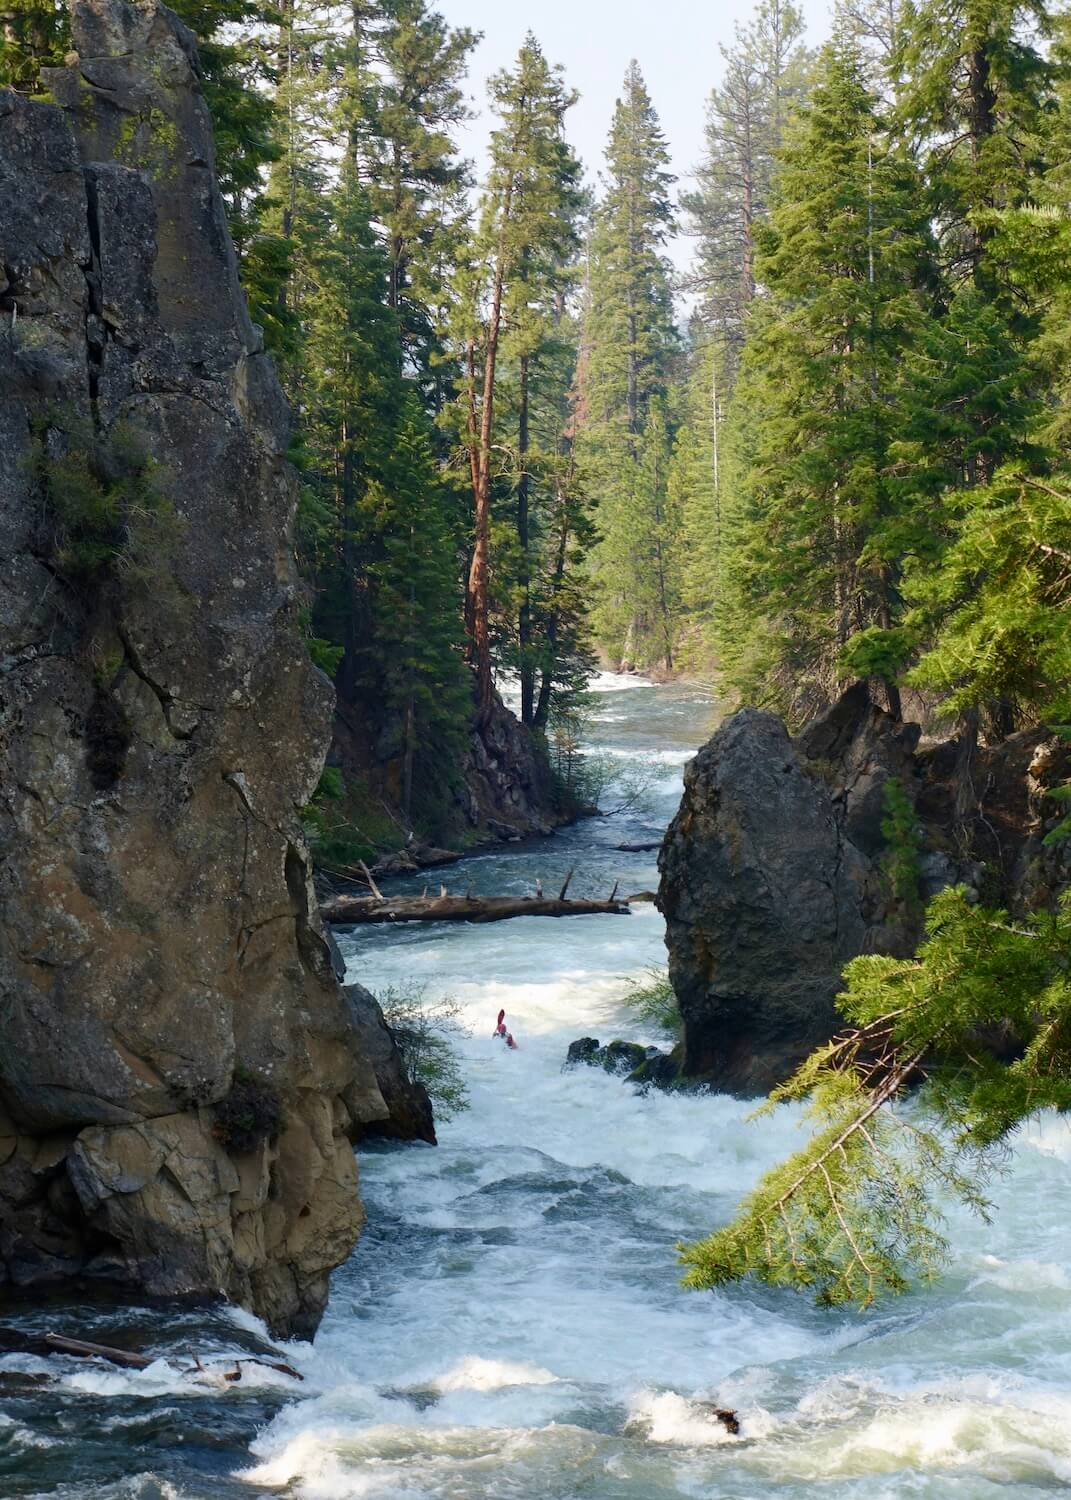 The Deschutes River winds through a canyon which is eroded away lava beds from a nearby volcano.  Rafting or paddling the river is a great thing to do in Bend, Oregon.  The fir trees are bright green and growing almost out of the rock that frames in the rushing white water of the wild river.